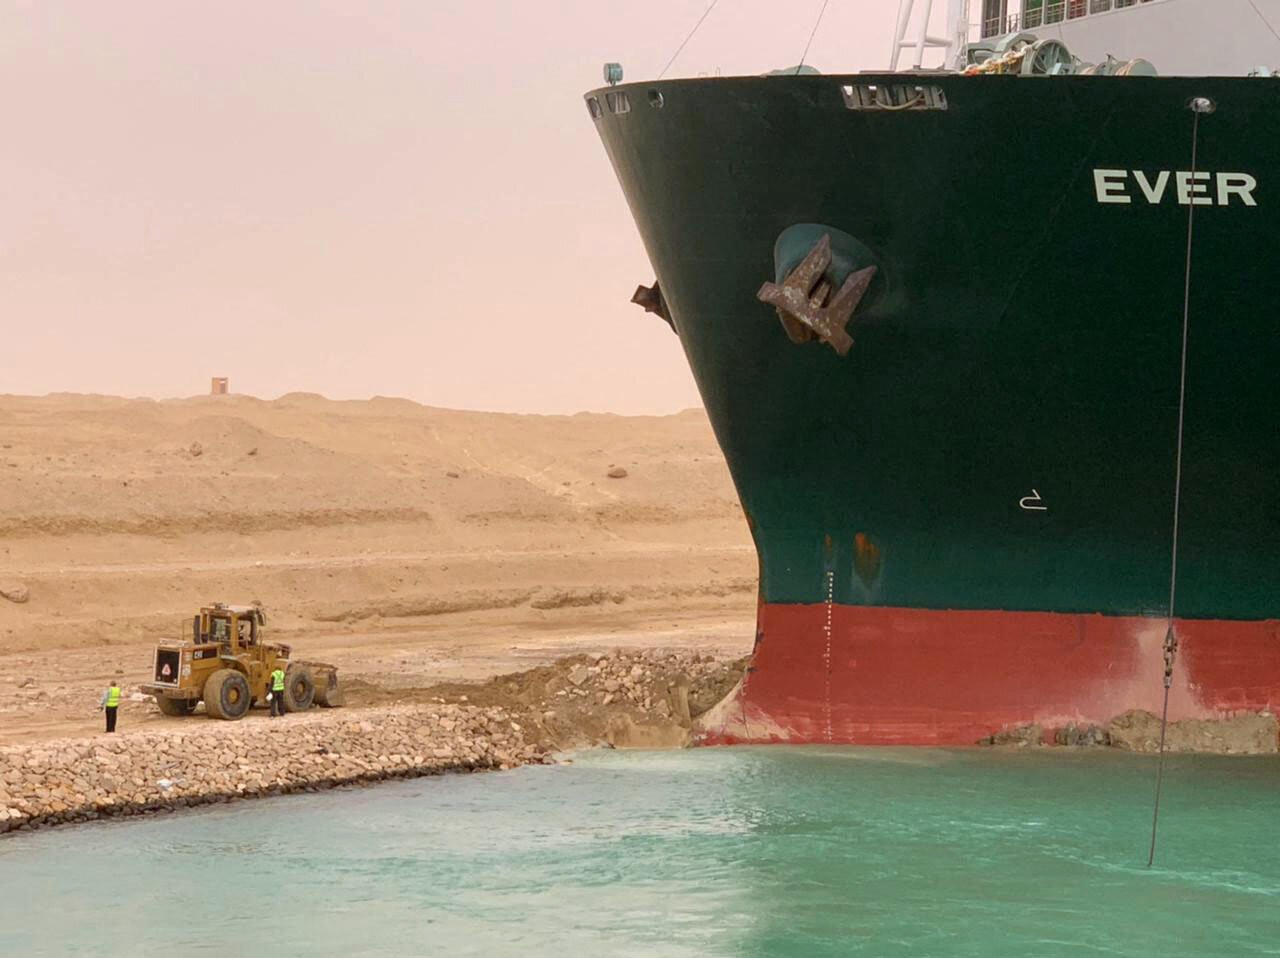 container ship stuck in Suez Canal